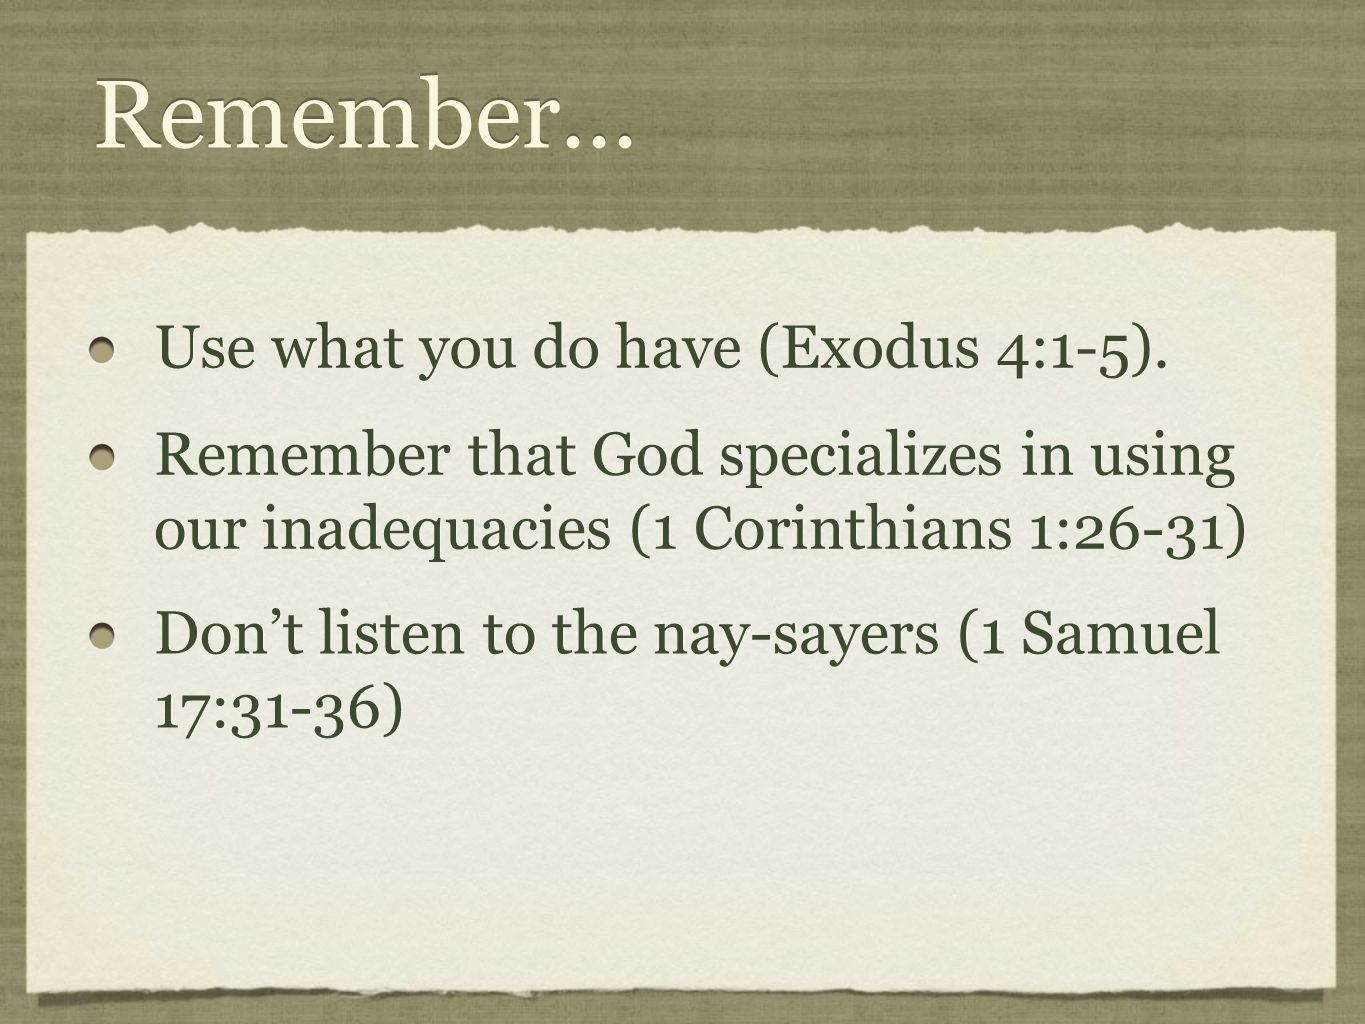 Remember... Use what you do have (Exodus 4:1-5).